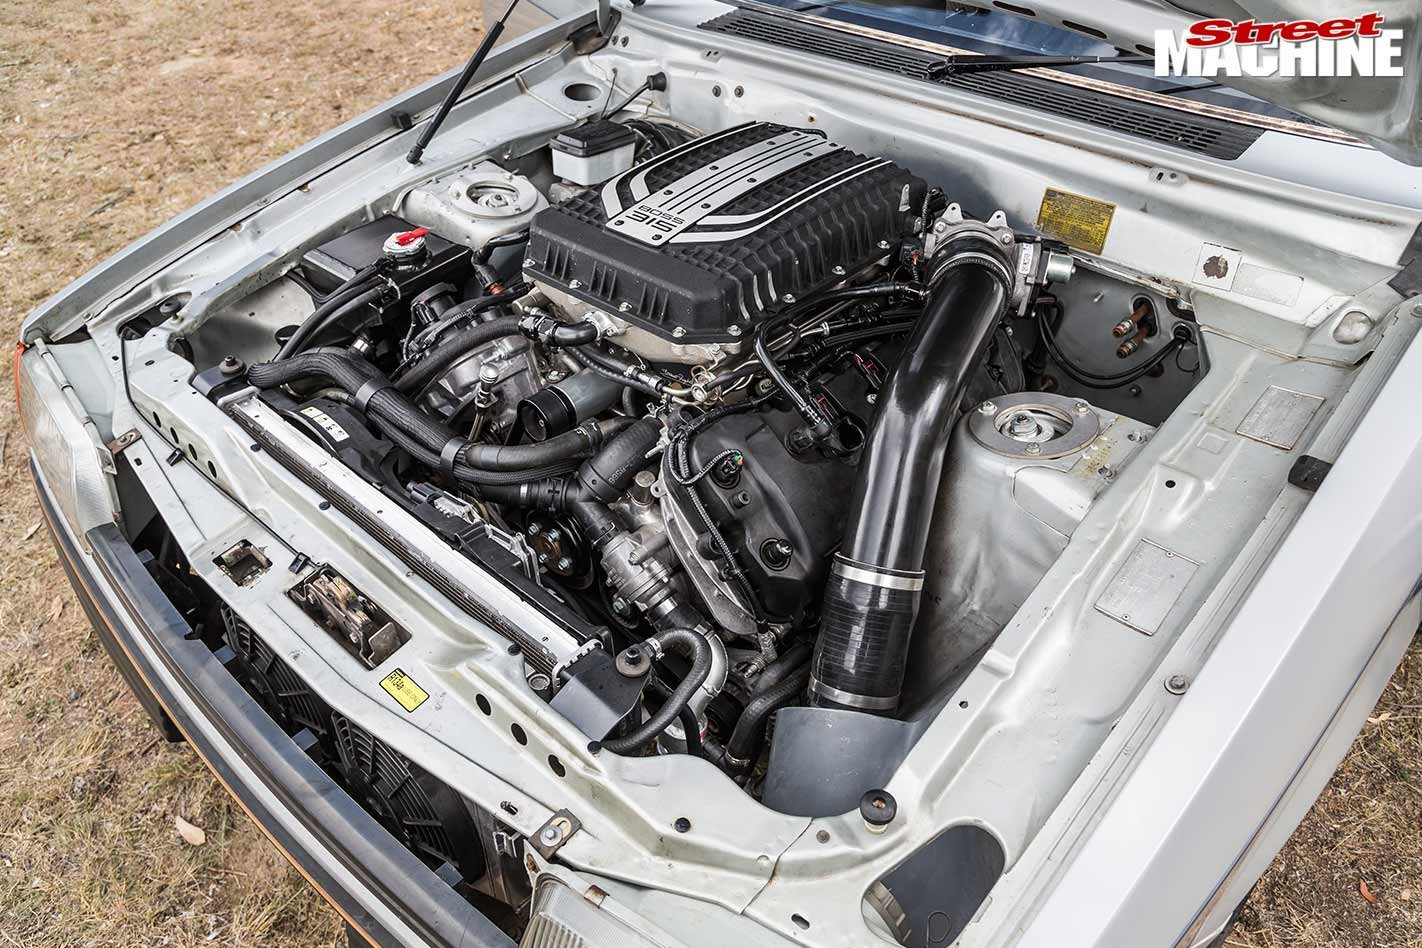 Coyote supercharged-V8 swapped Ford XE Falcon